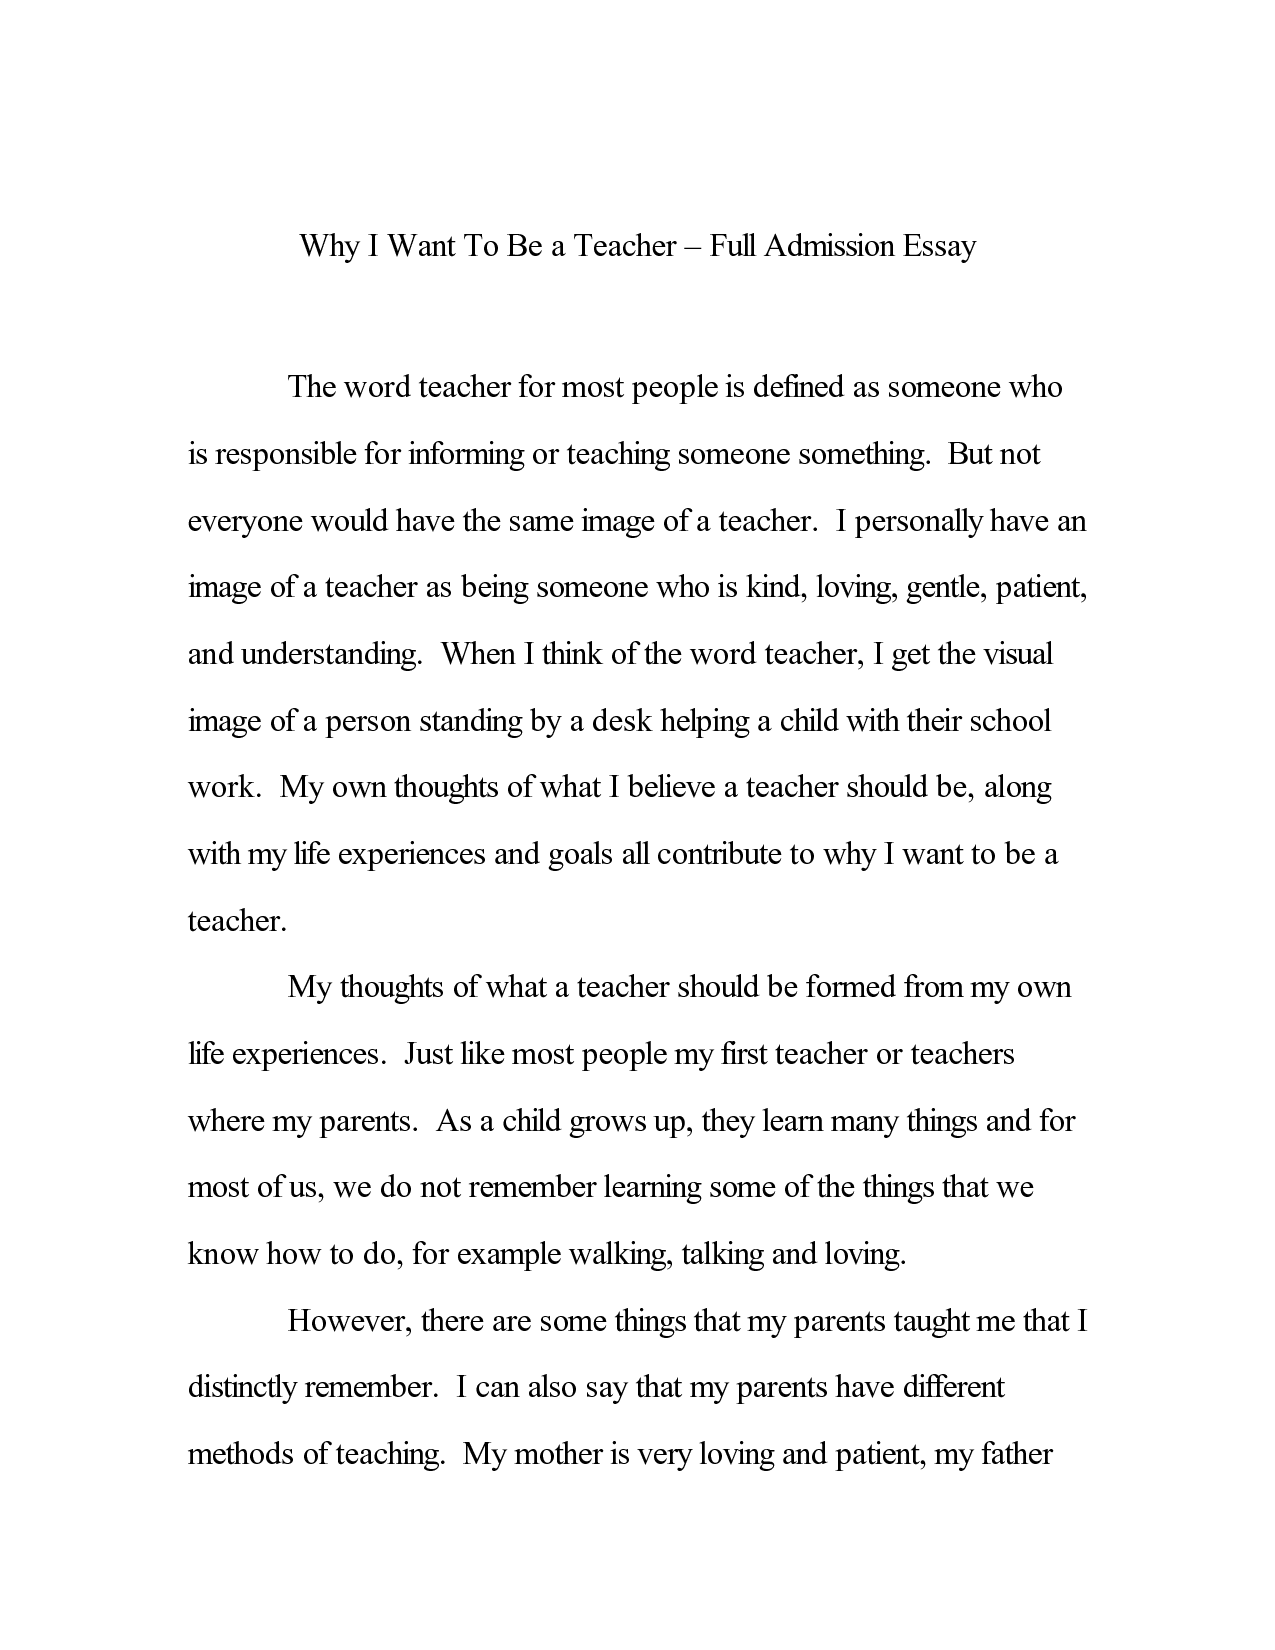 002 College Application Essay Unbelievable Template Admission Topics To Avoid Help Full